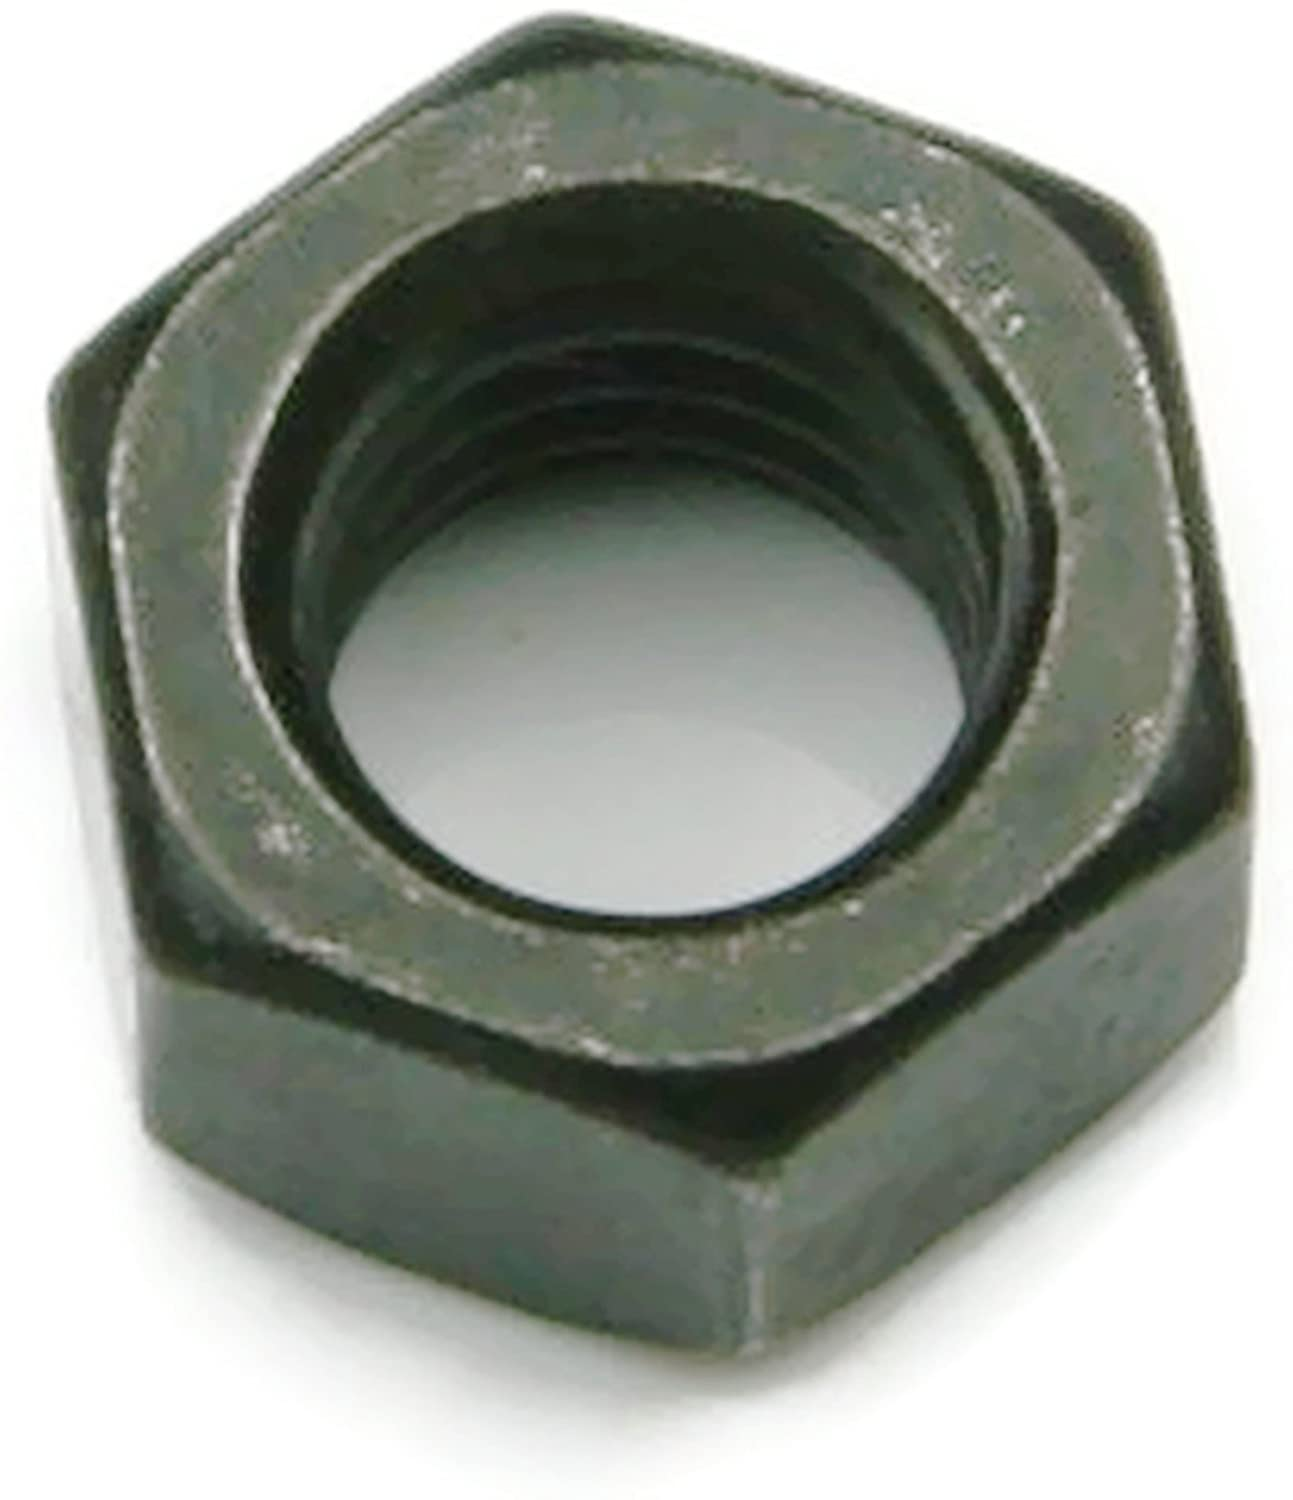 - Qty 25 7//16 Flats x 7//32 Thick 1//4-20 18-8 Stainless Steel Black Oxide Finish Hex Nuts